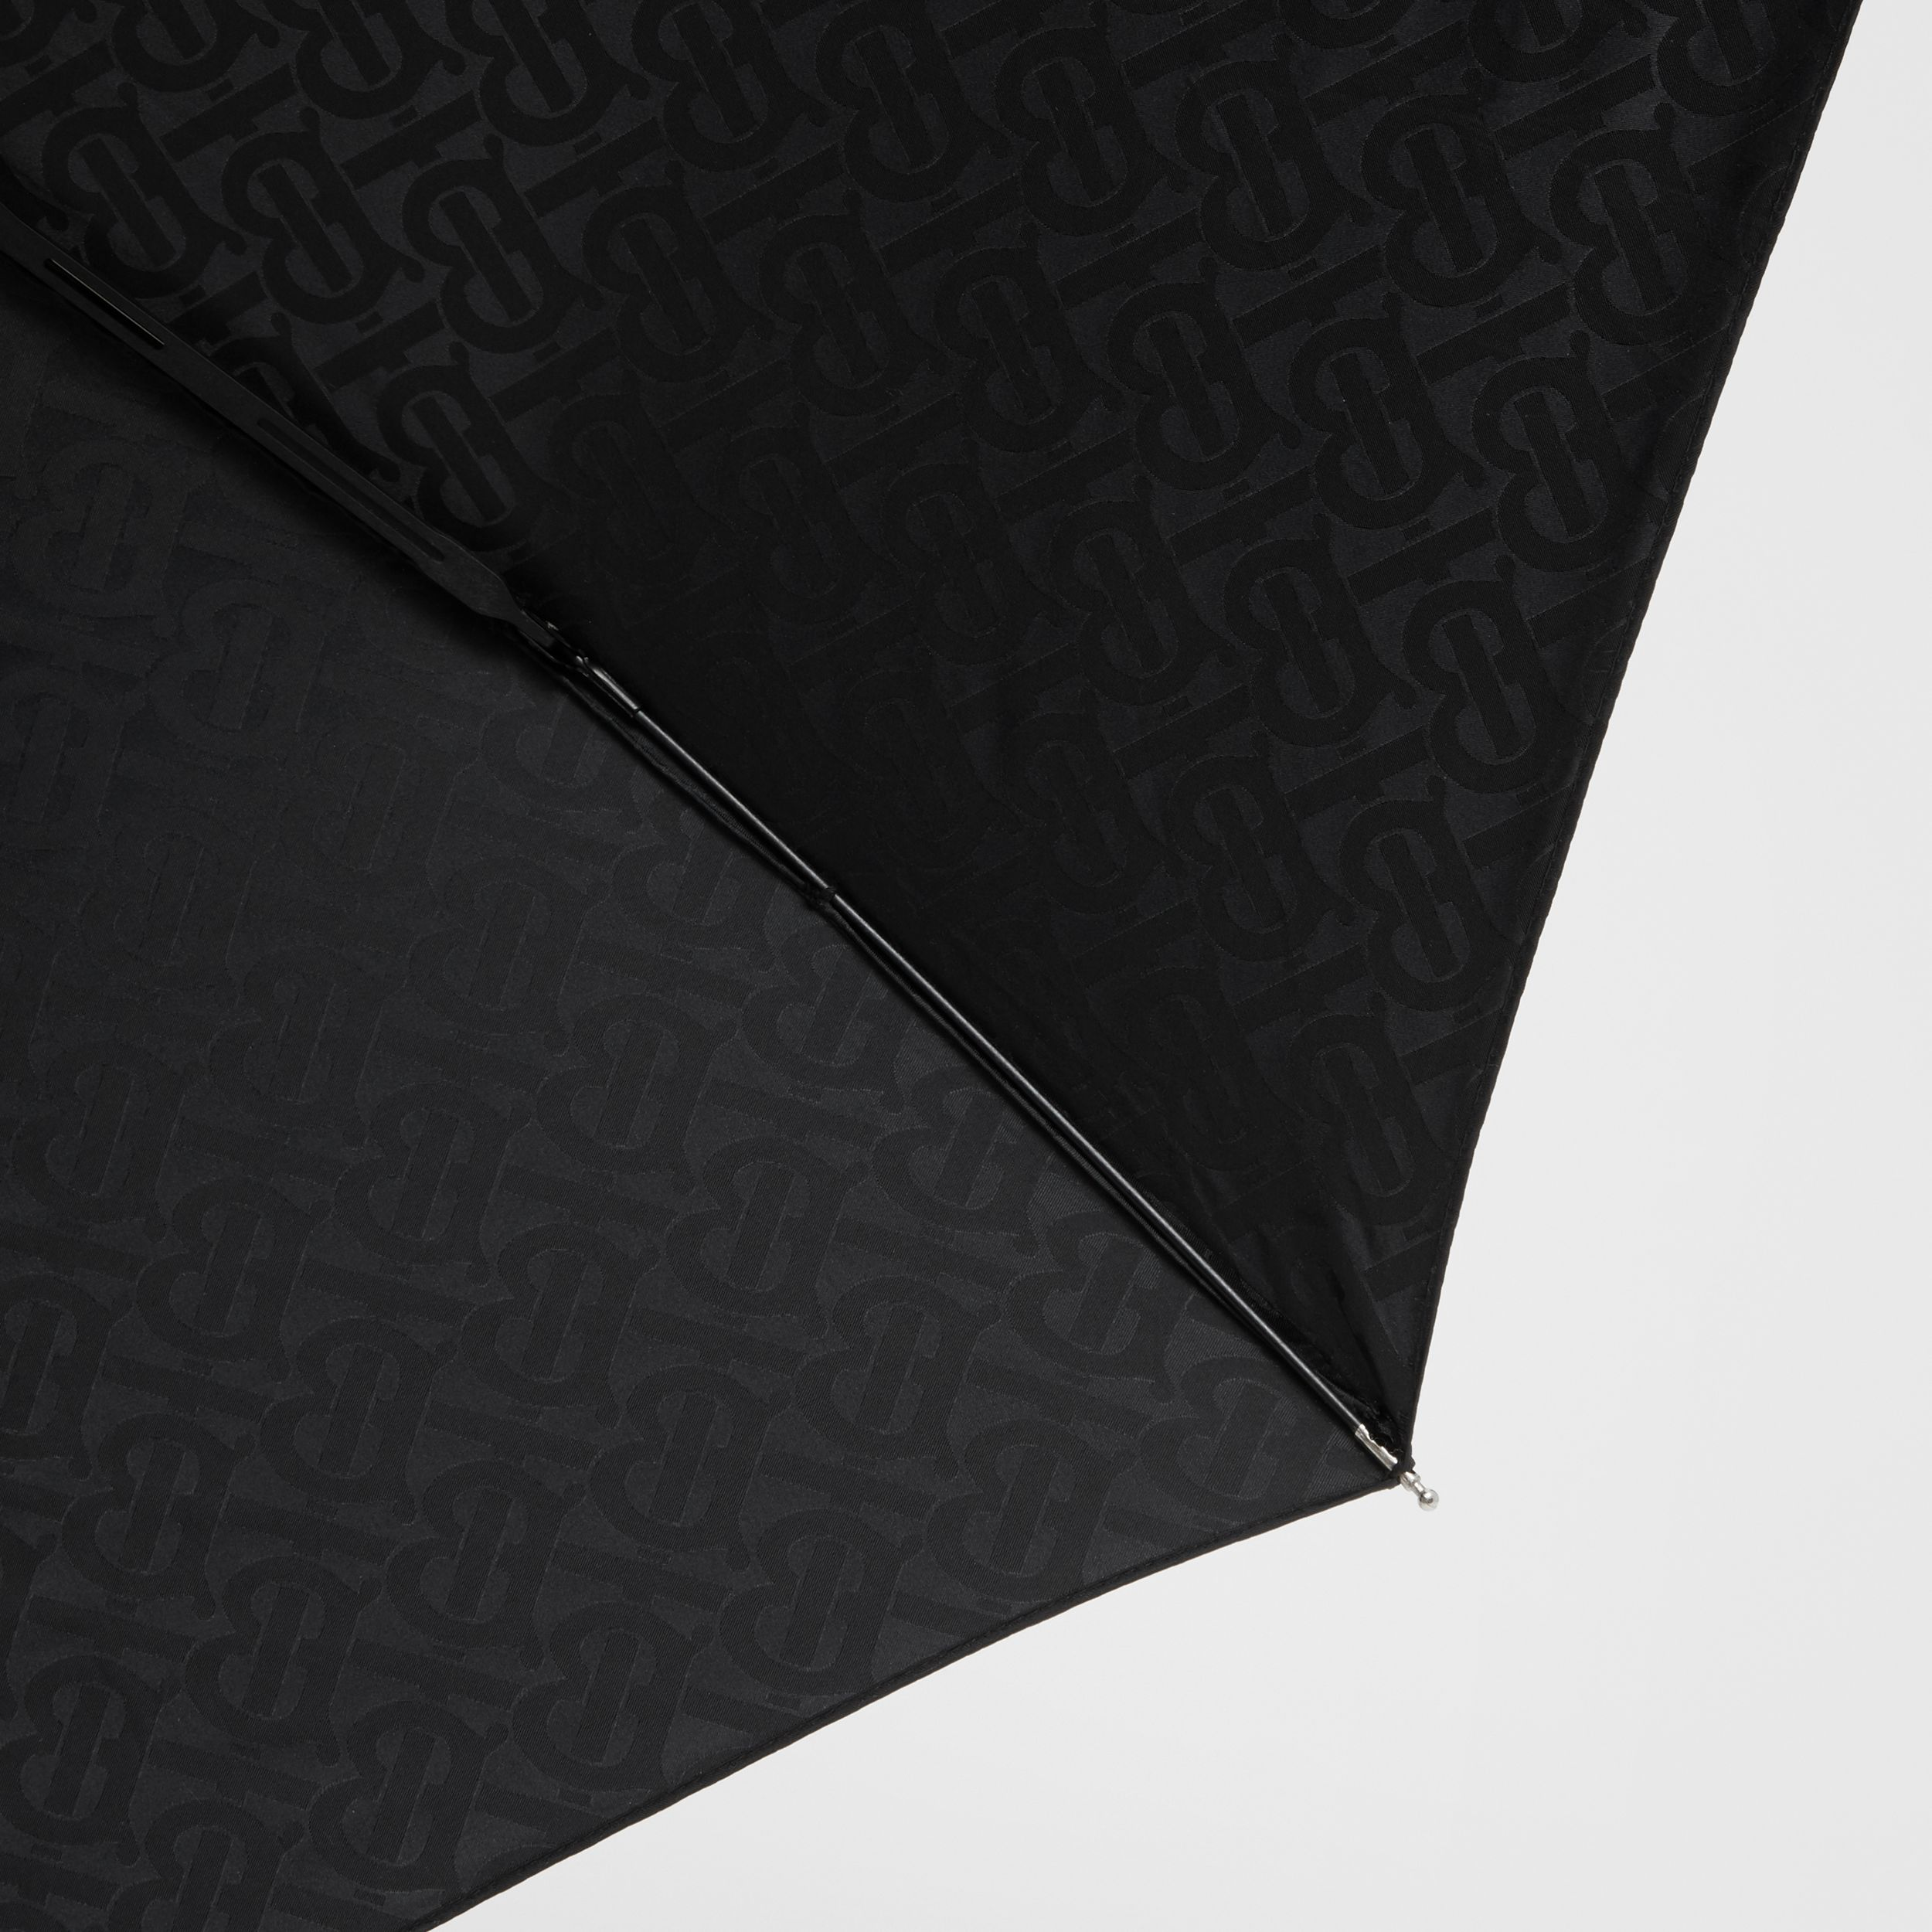 Monogram Print Folding Umbrella in Black | Burberry - 2